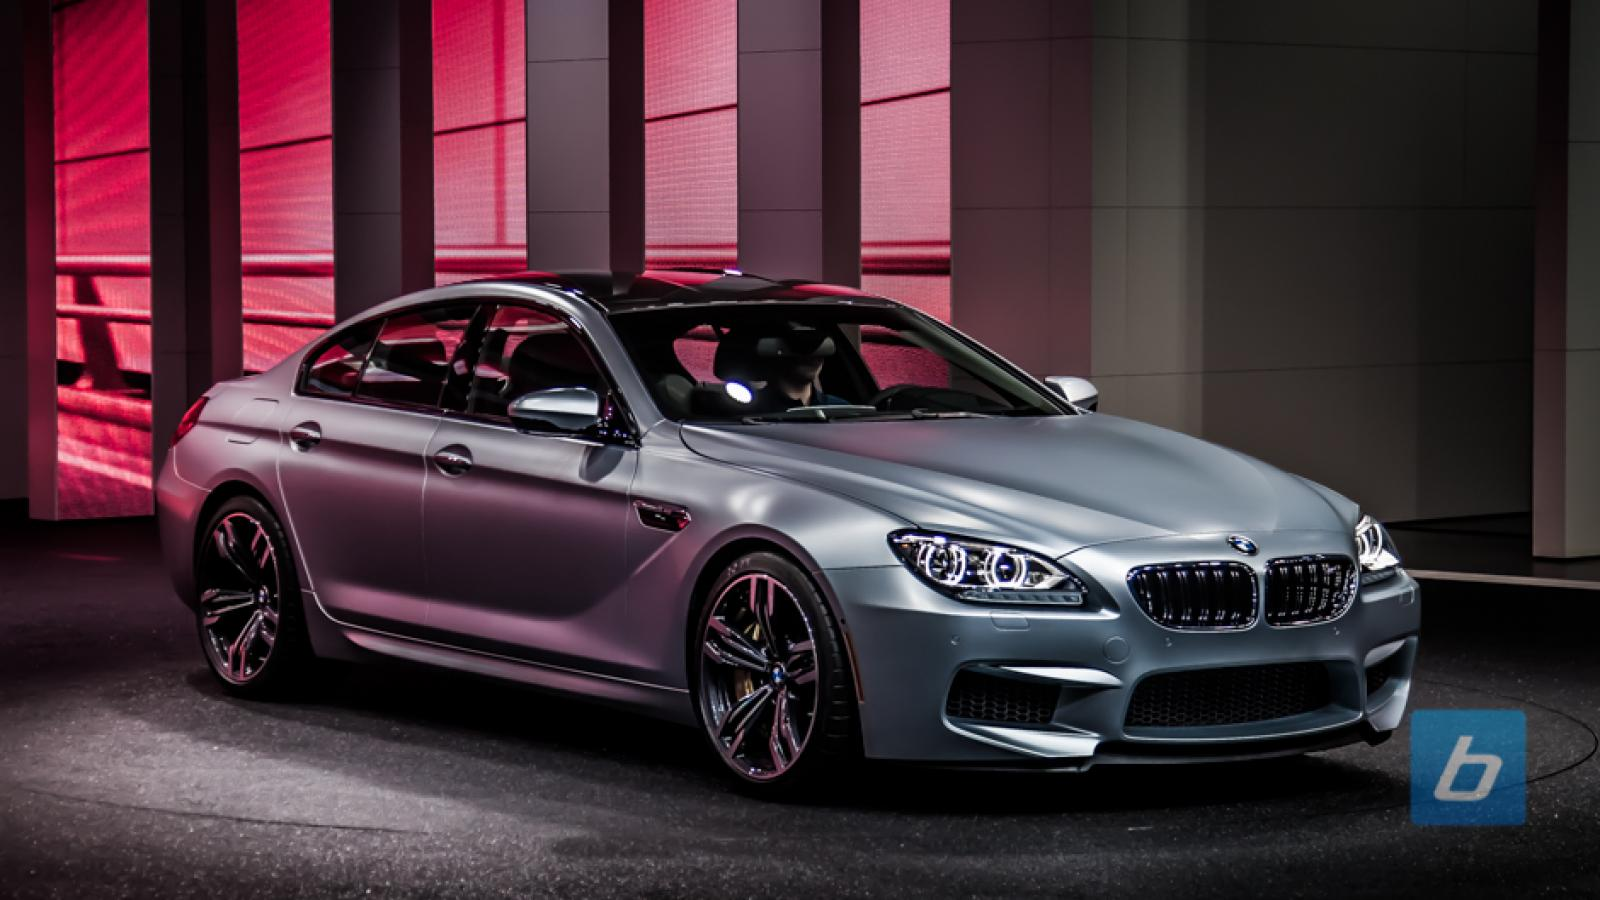 2014 bmw m6 gran coupe information and photos zombiedrive. Black Bedroom Furniture Sets. Home Design Ideas